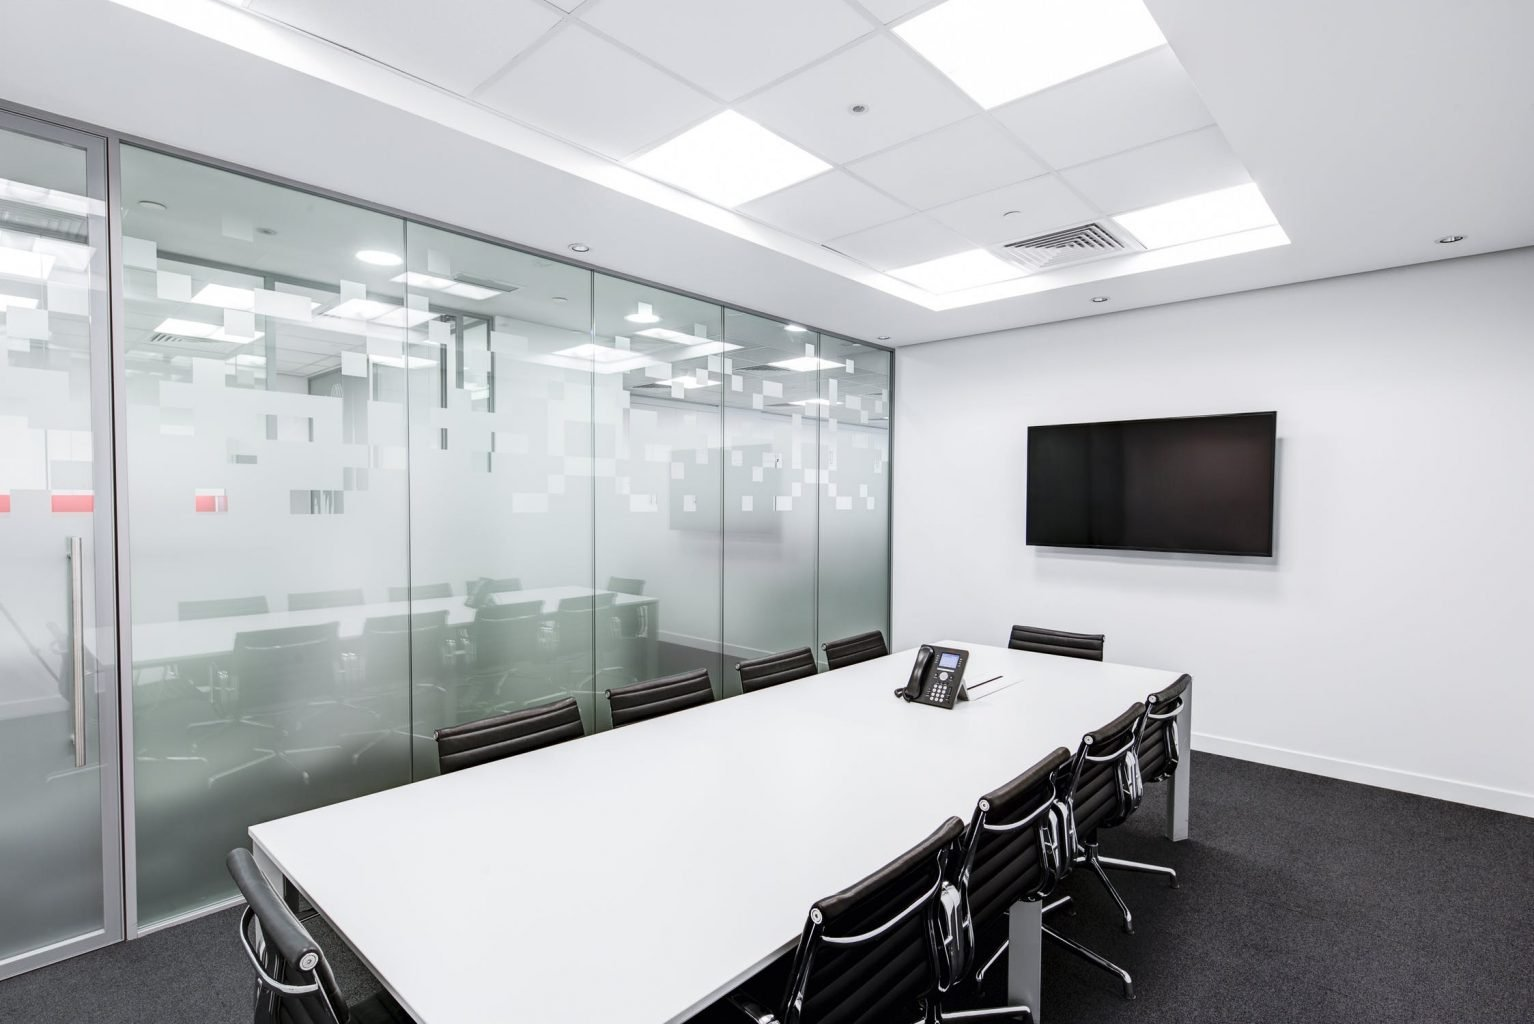 Seven Reasons to Consider Commercial Decorative Glass Film for Your Space - Decorative Window Film Iowa City and Cedar Rapids, Iowa